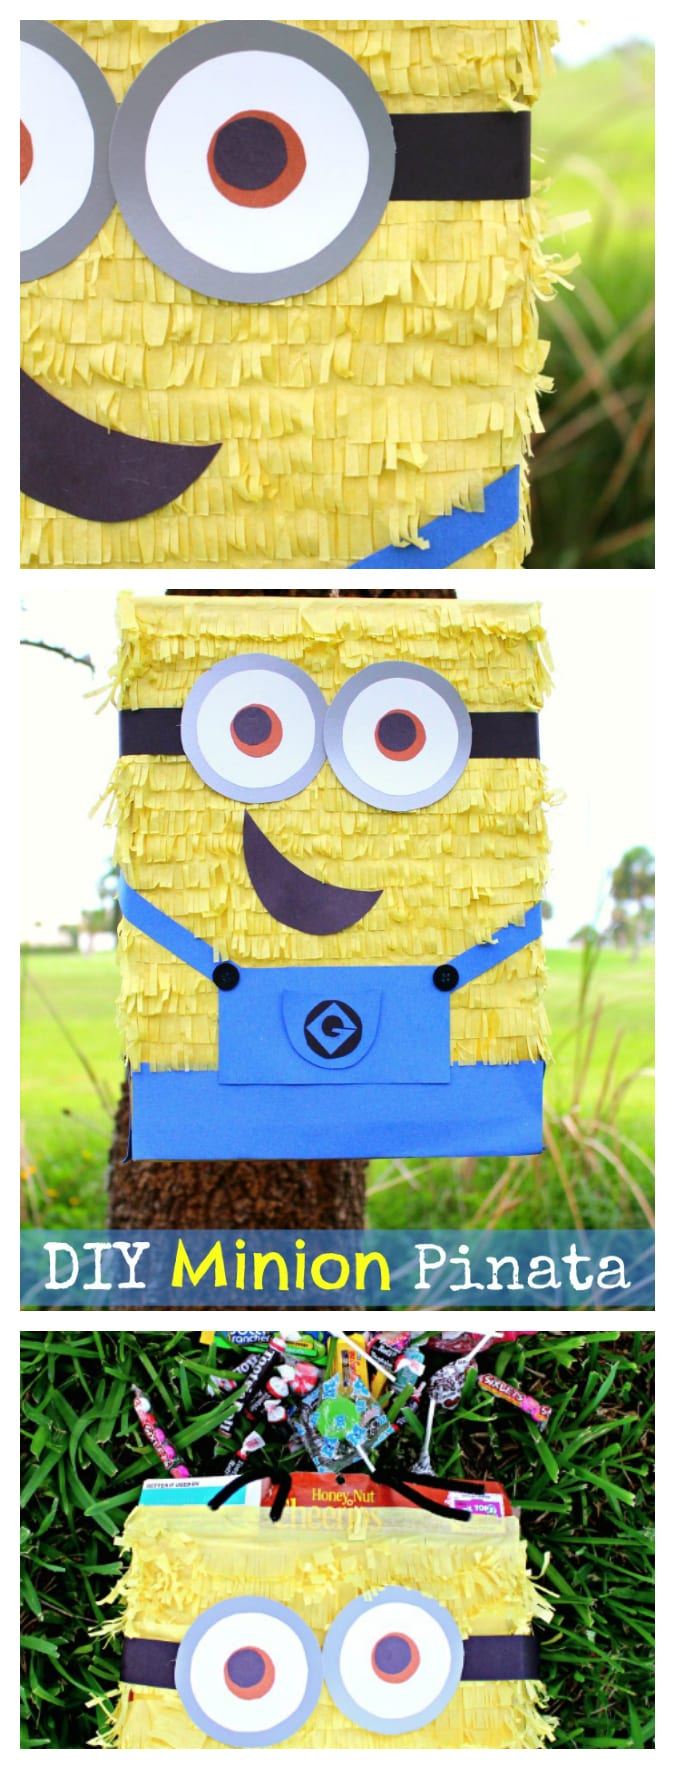 DIY minion pinata pinterest DIY Minion Pinata | Great ready for the new Minions Movie with this easy DIY Minions Pinata! Frugal Despicable Me party idea for the kids #PartyPlanning #Minions #KidsParty